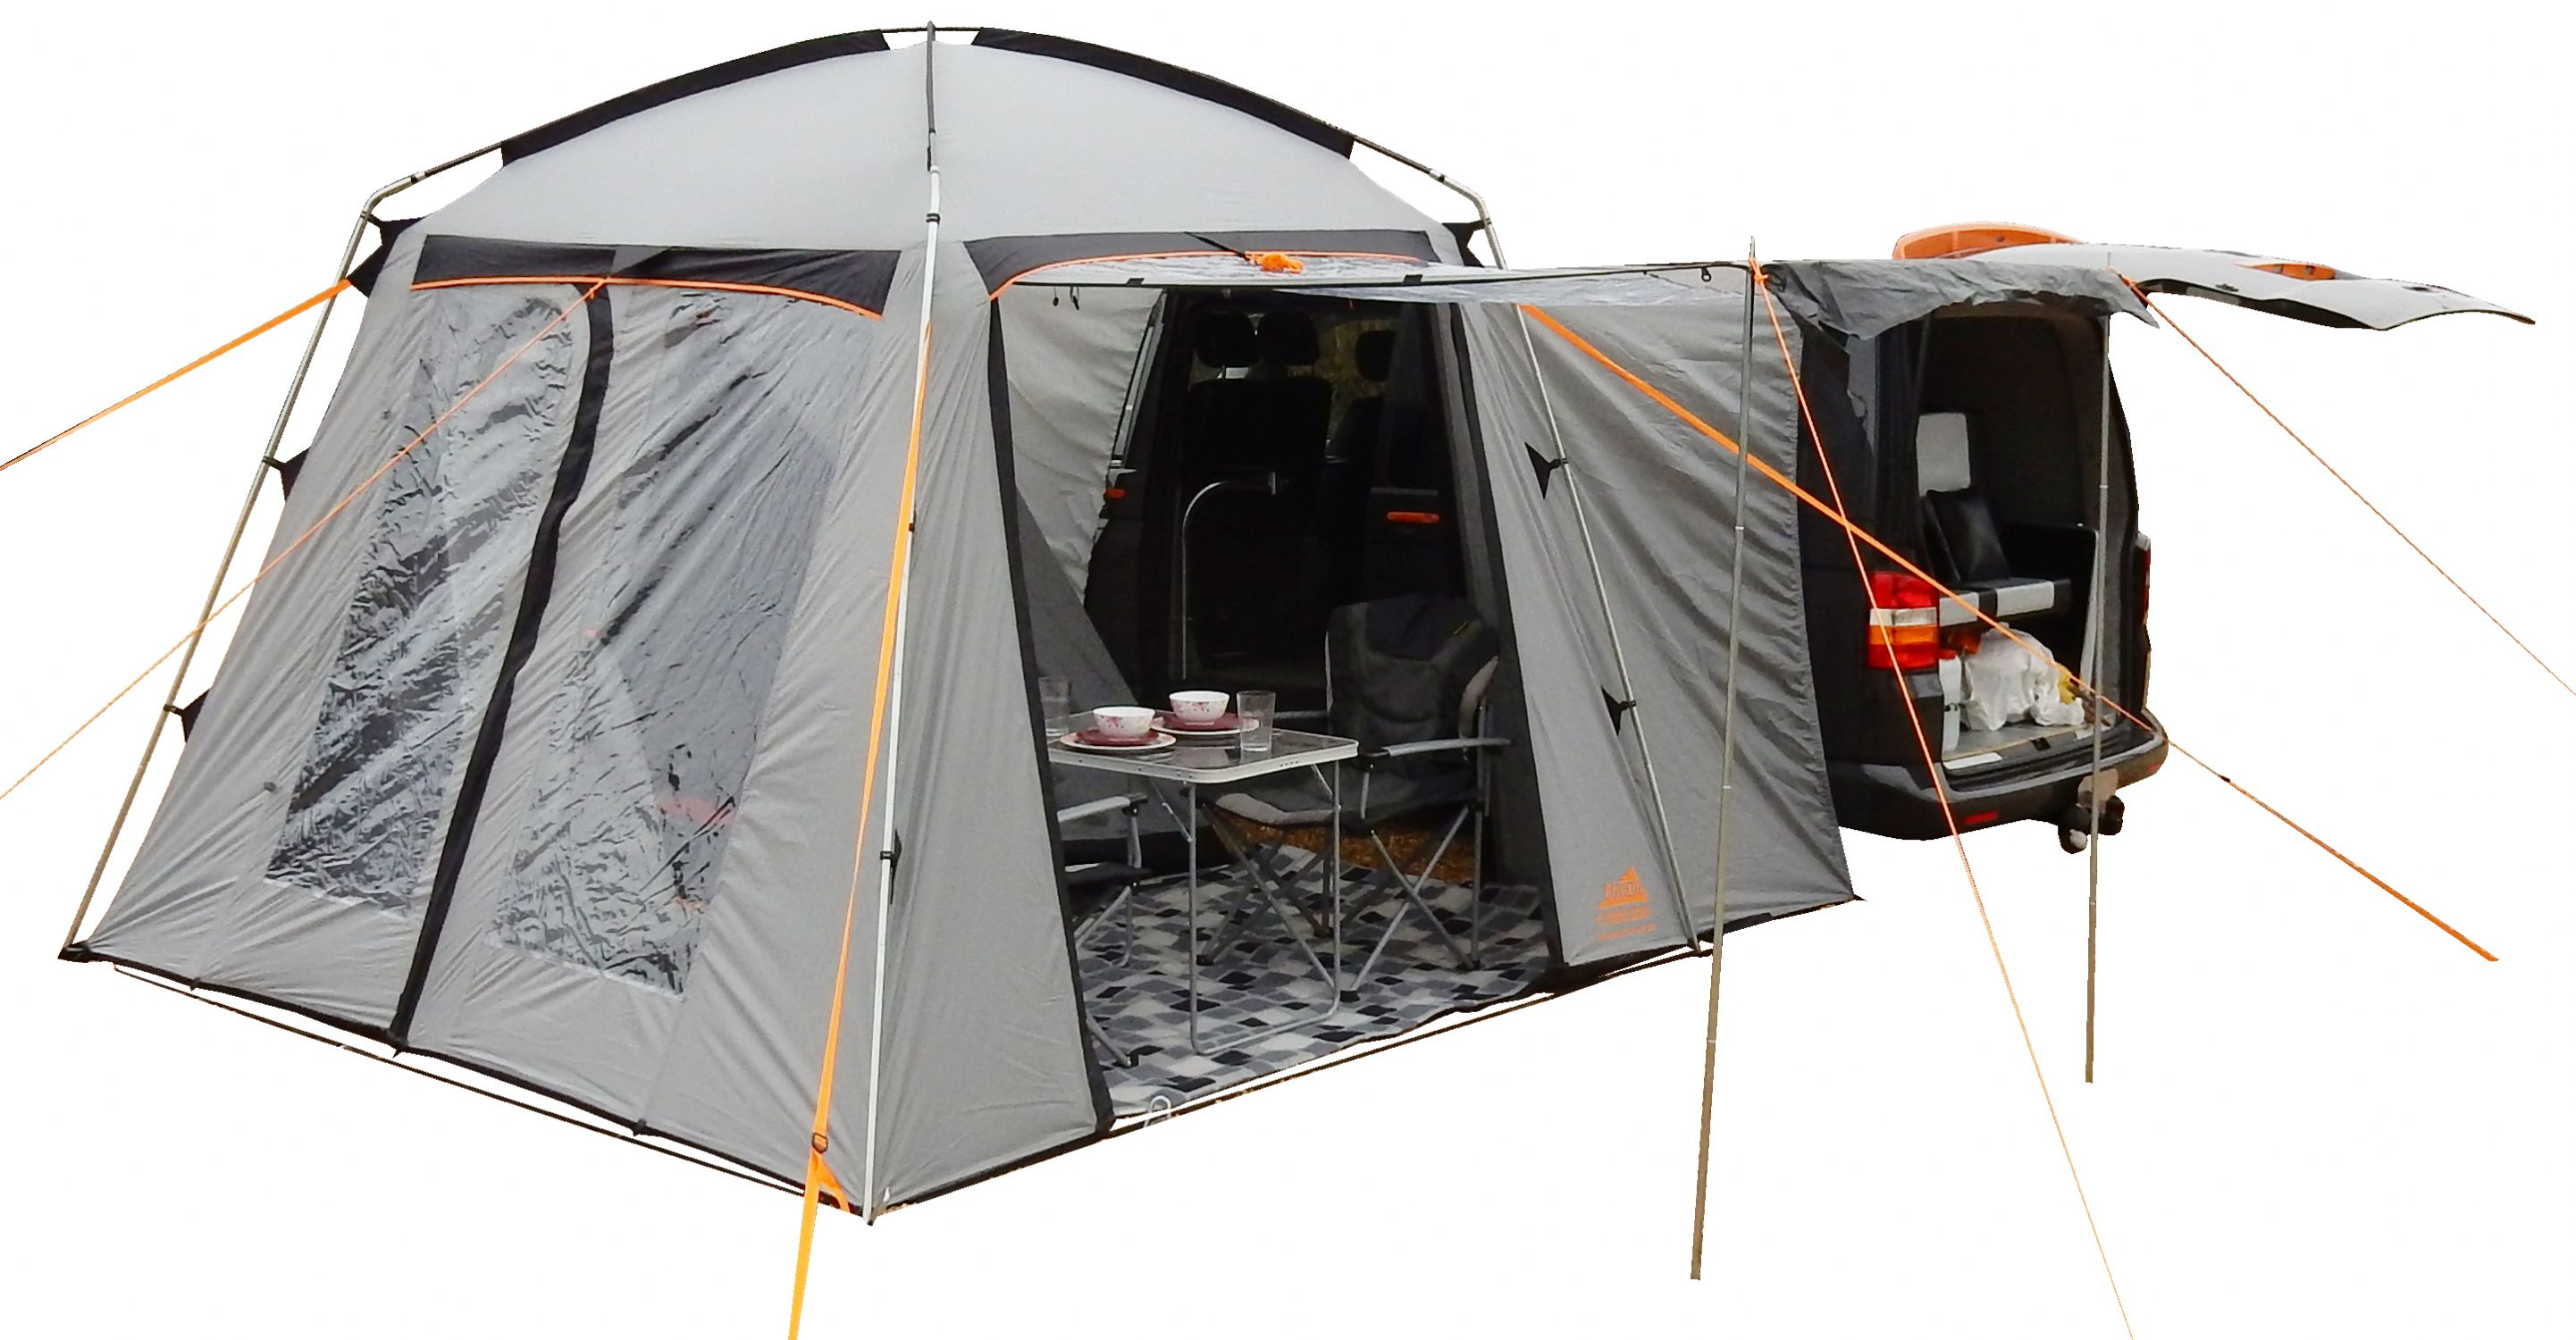 product awnings tents category away canopies drive tent awning khyam archives motordome tourer camper essentials